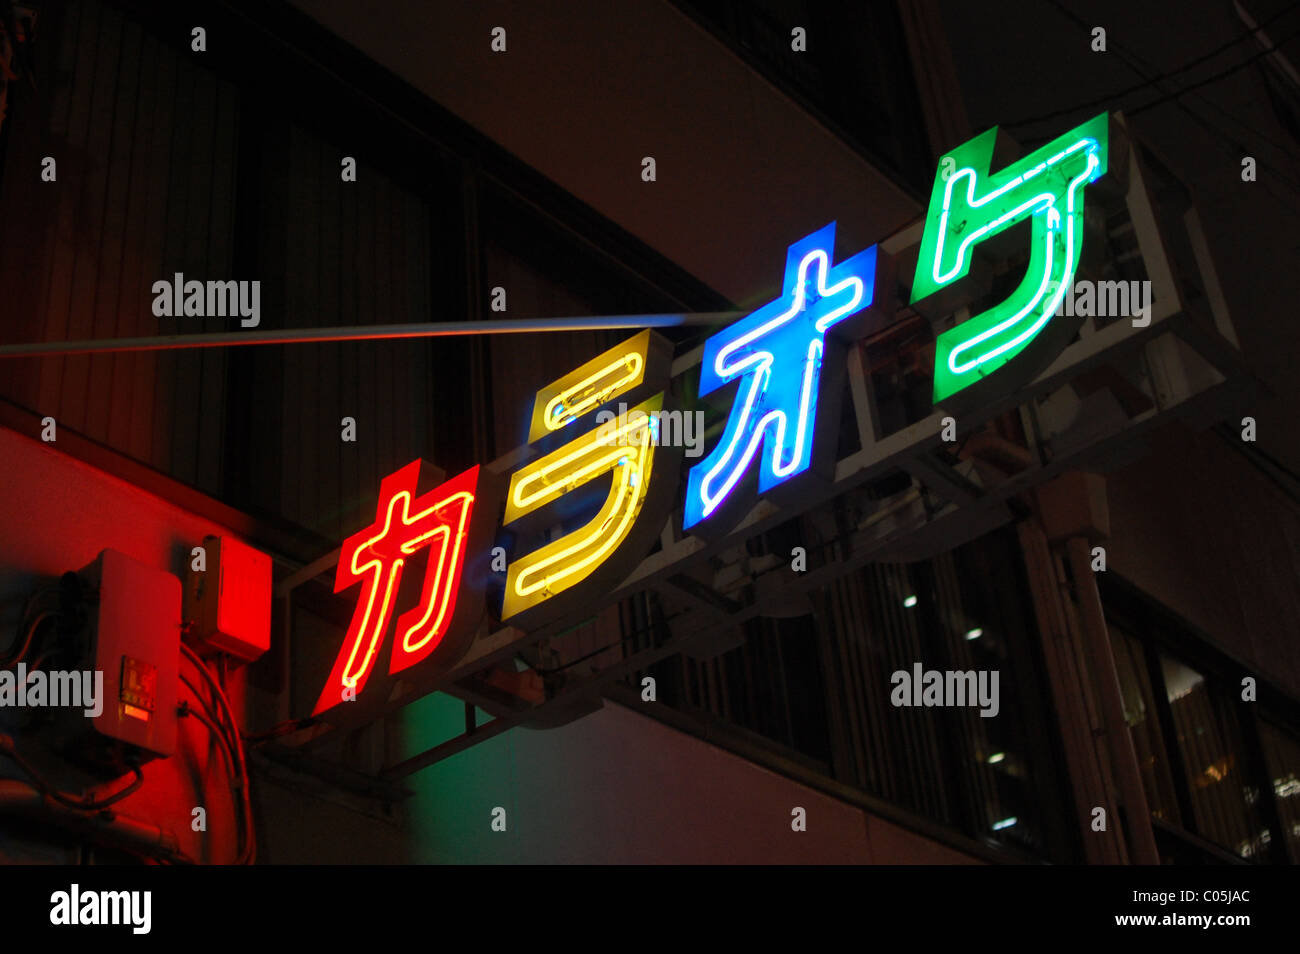 neon-sign-for-a-karaoke-bar-in-osaka-jap